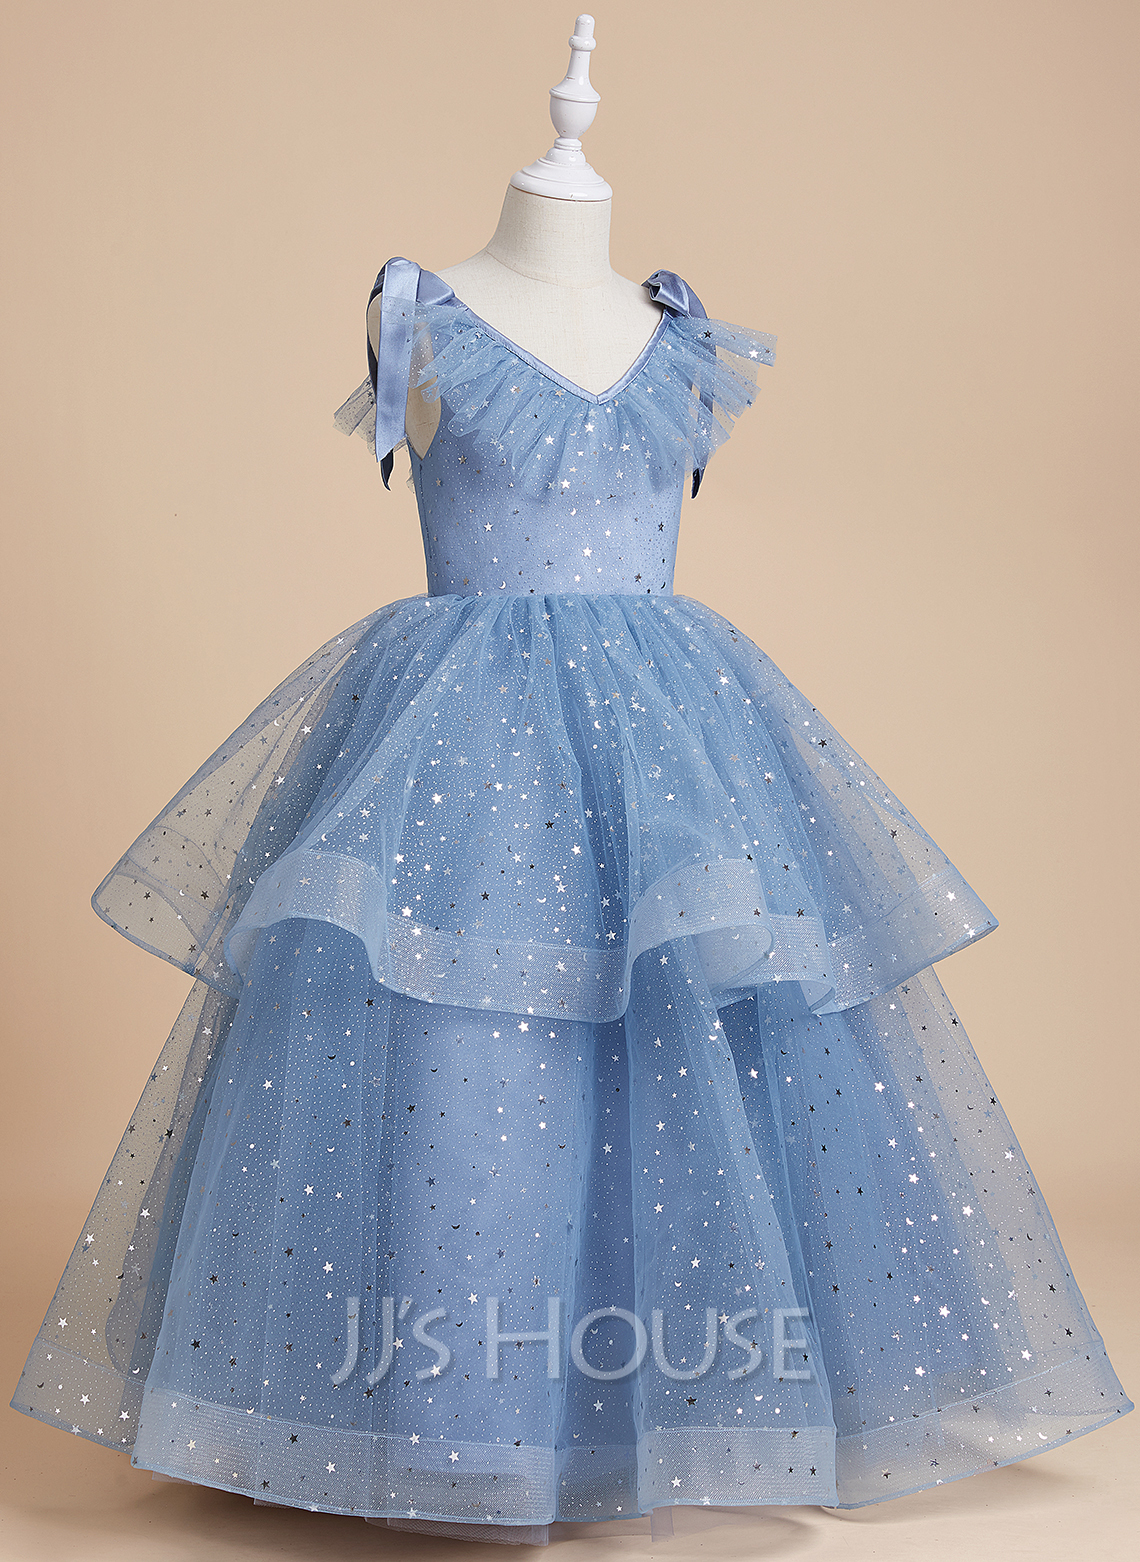 Ball-Gown/Princess Floor-length Flower Girl Dress - Satin/Tulle/Sequined Sleeveless V-neck With Bow(s)